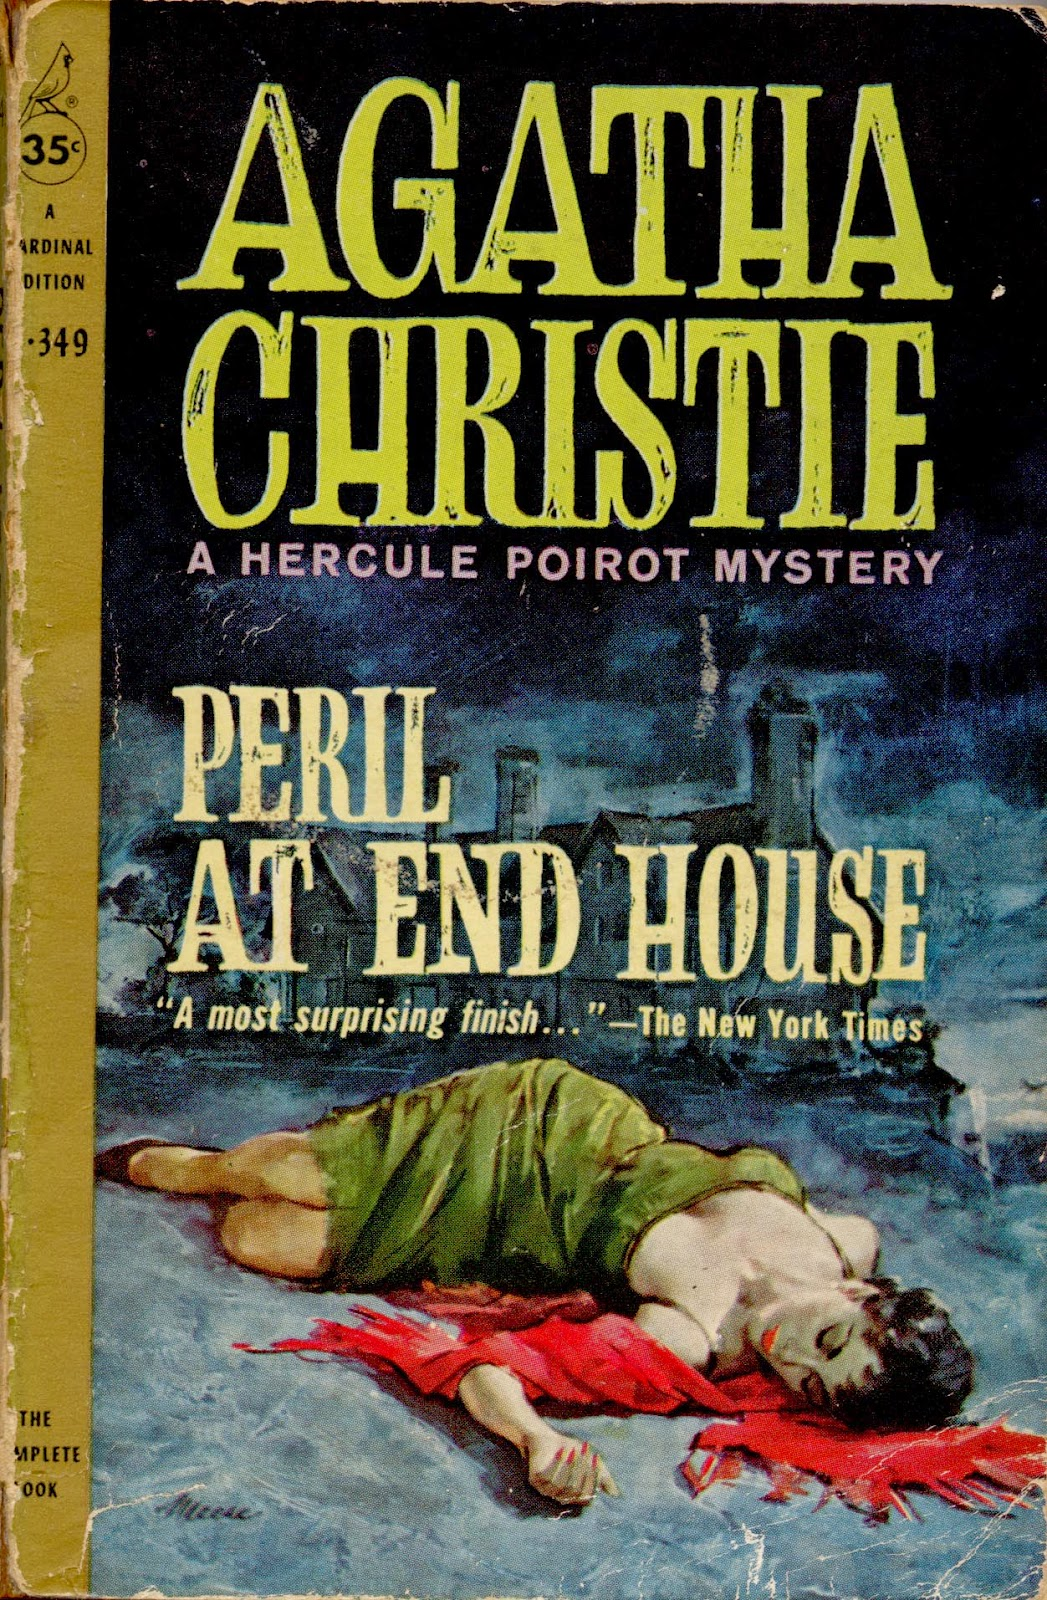 Agatha Christie - The Peril at End House pdf ~ novels society blog